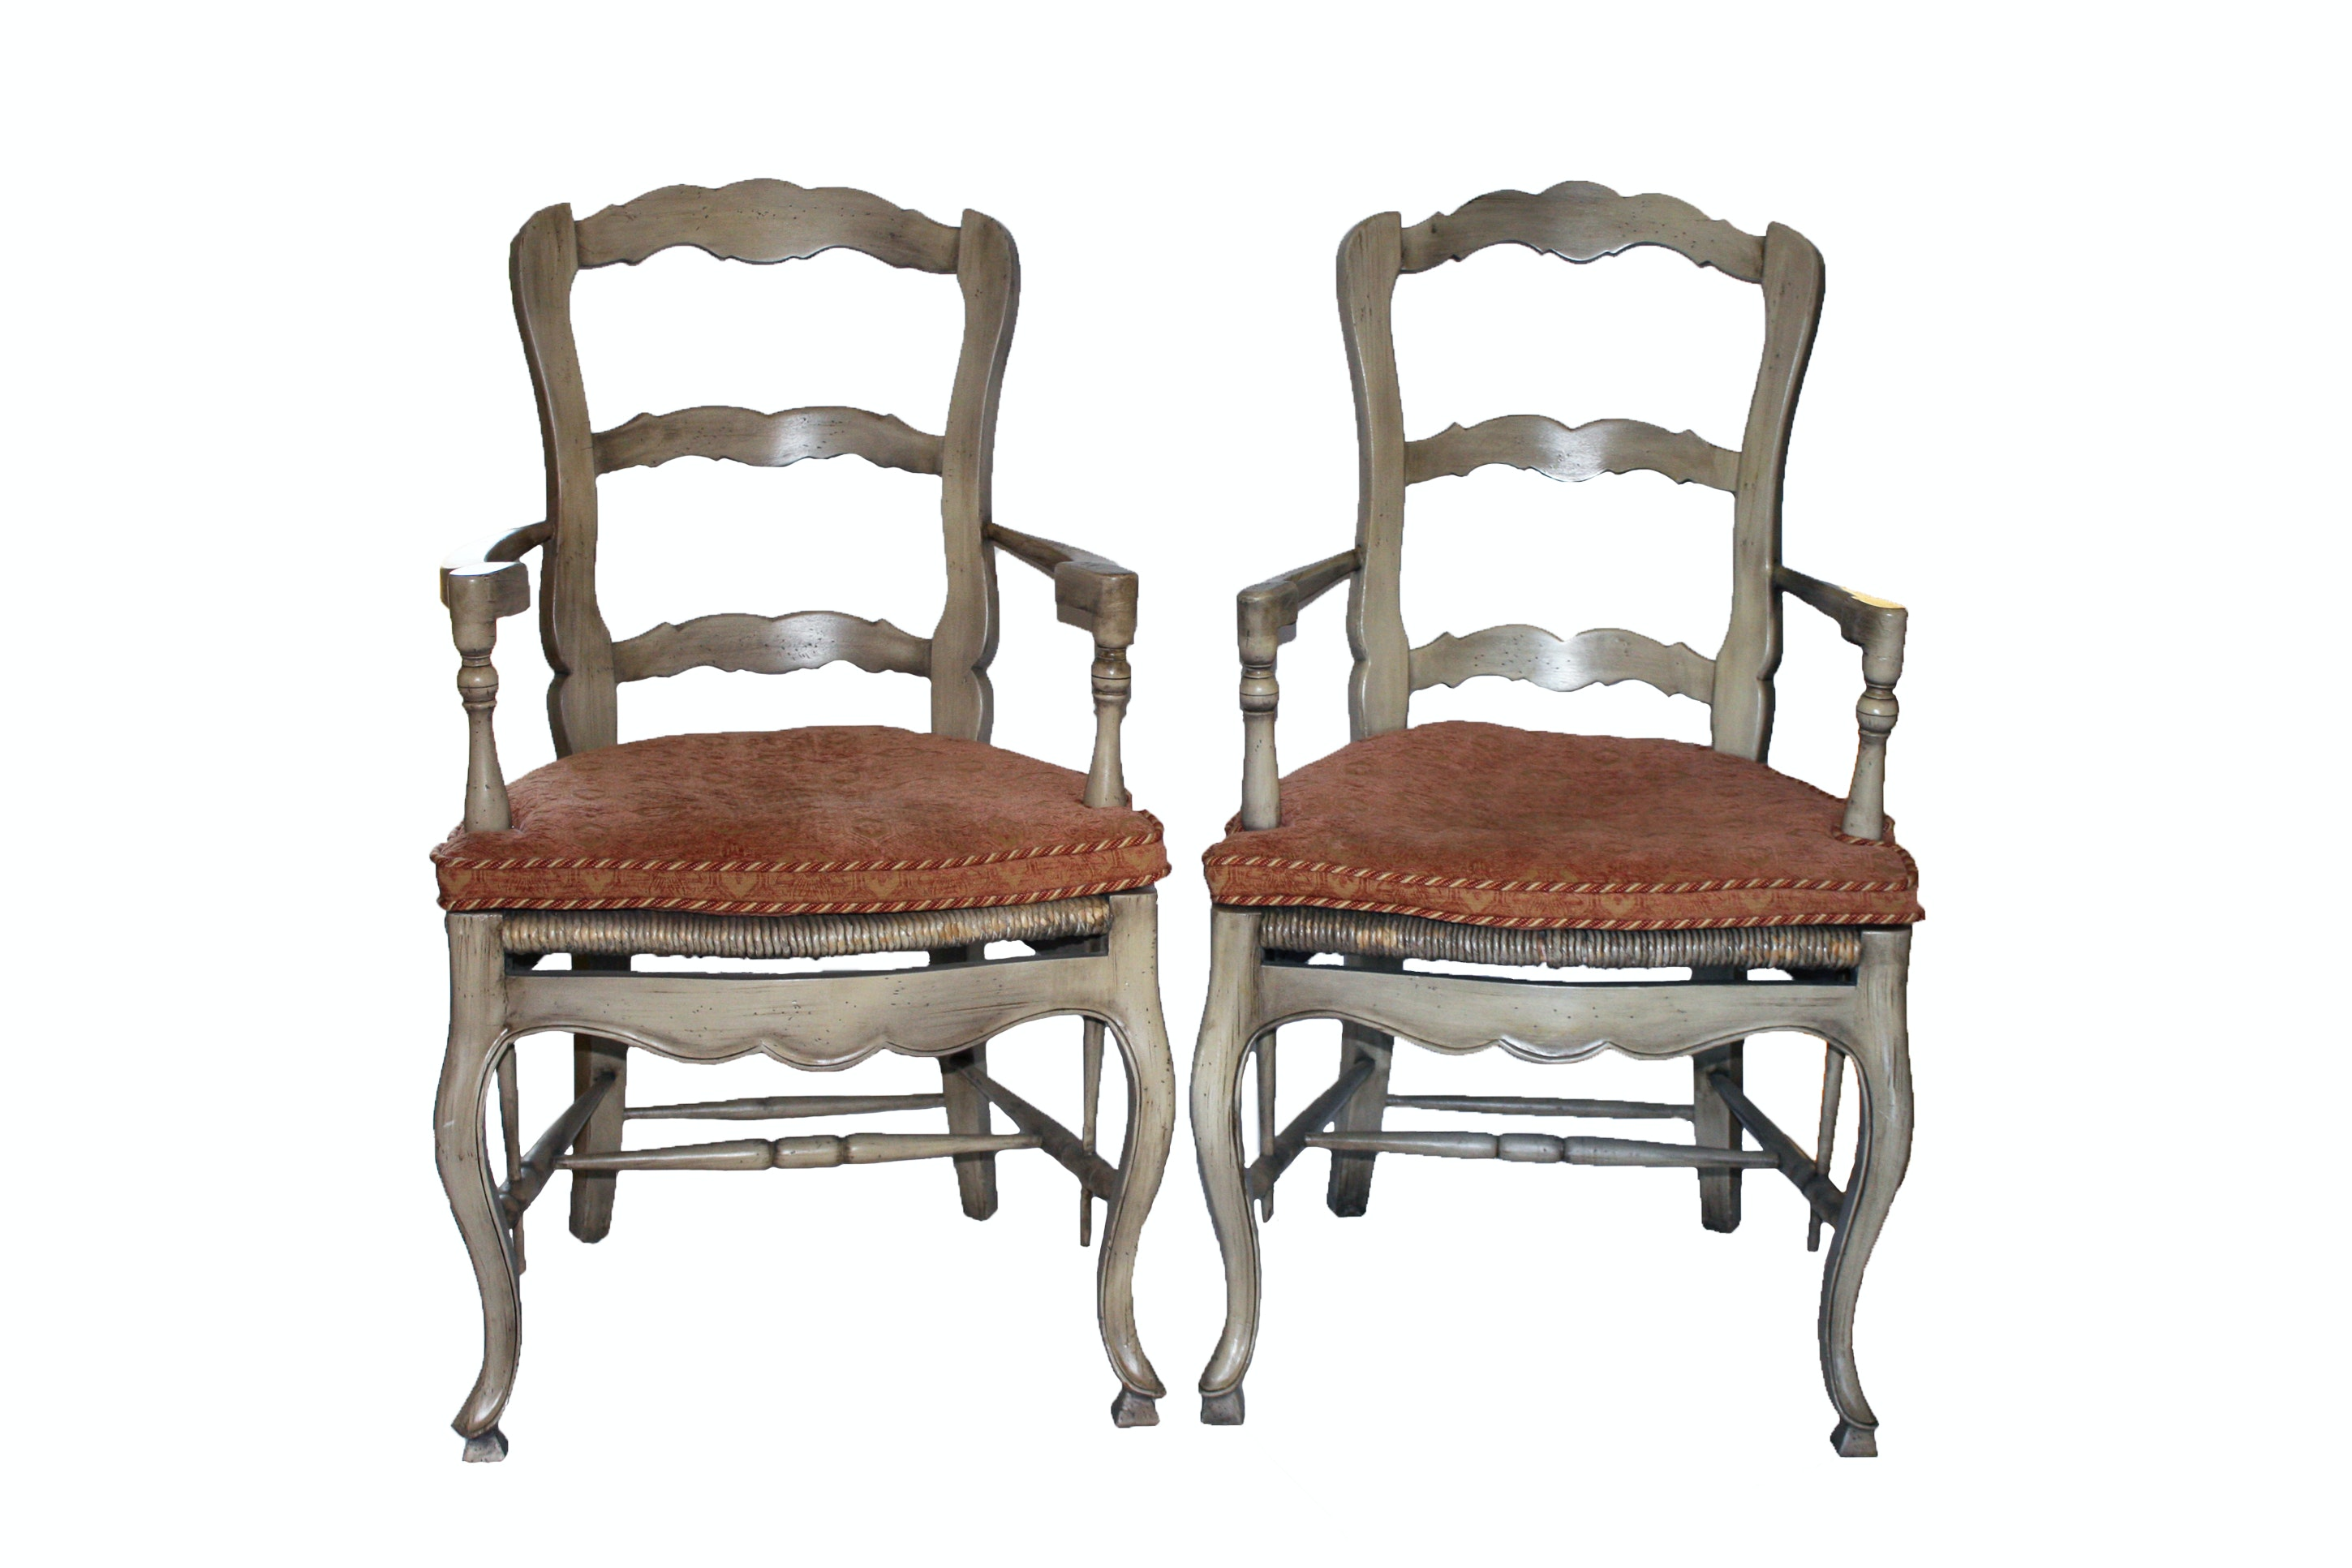 French Provincial Style Fauteuils